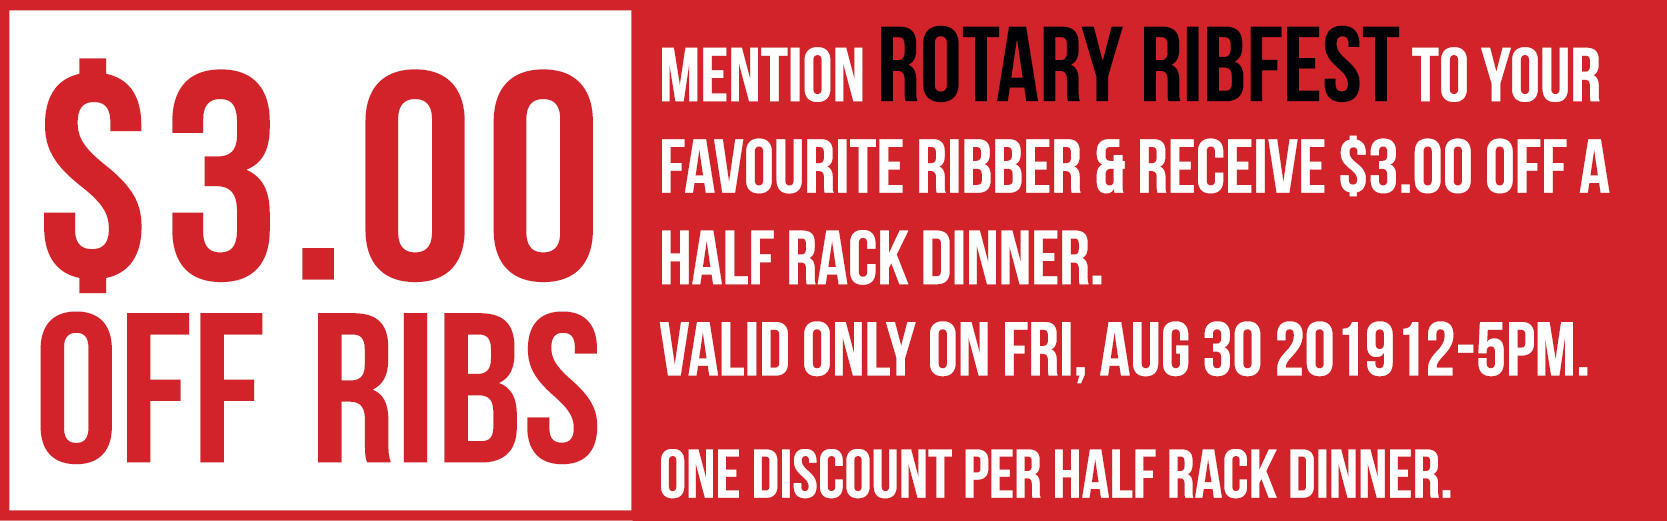 $3.00 off when you mention Rotary Ribfest - Print coupon here!